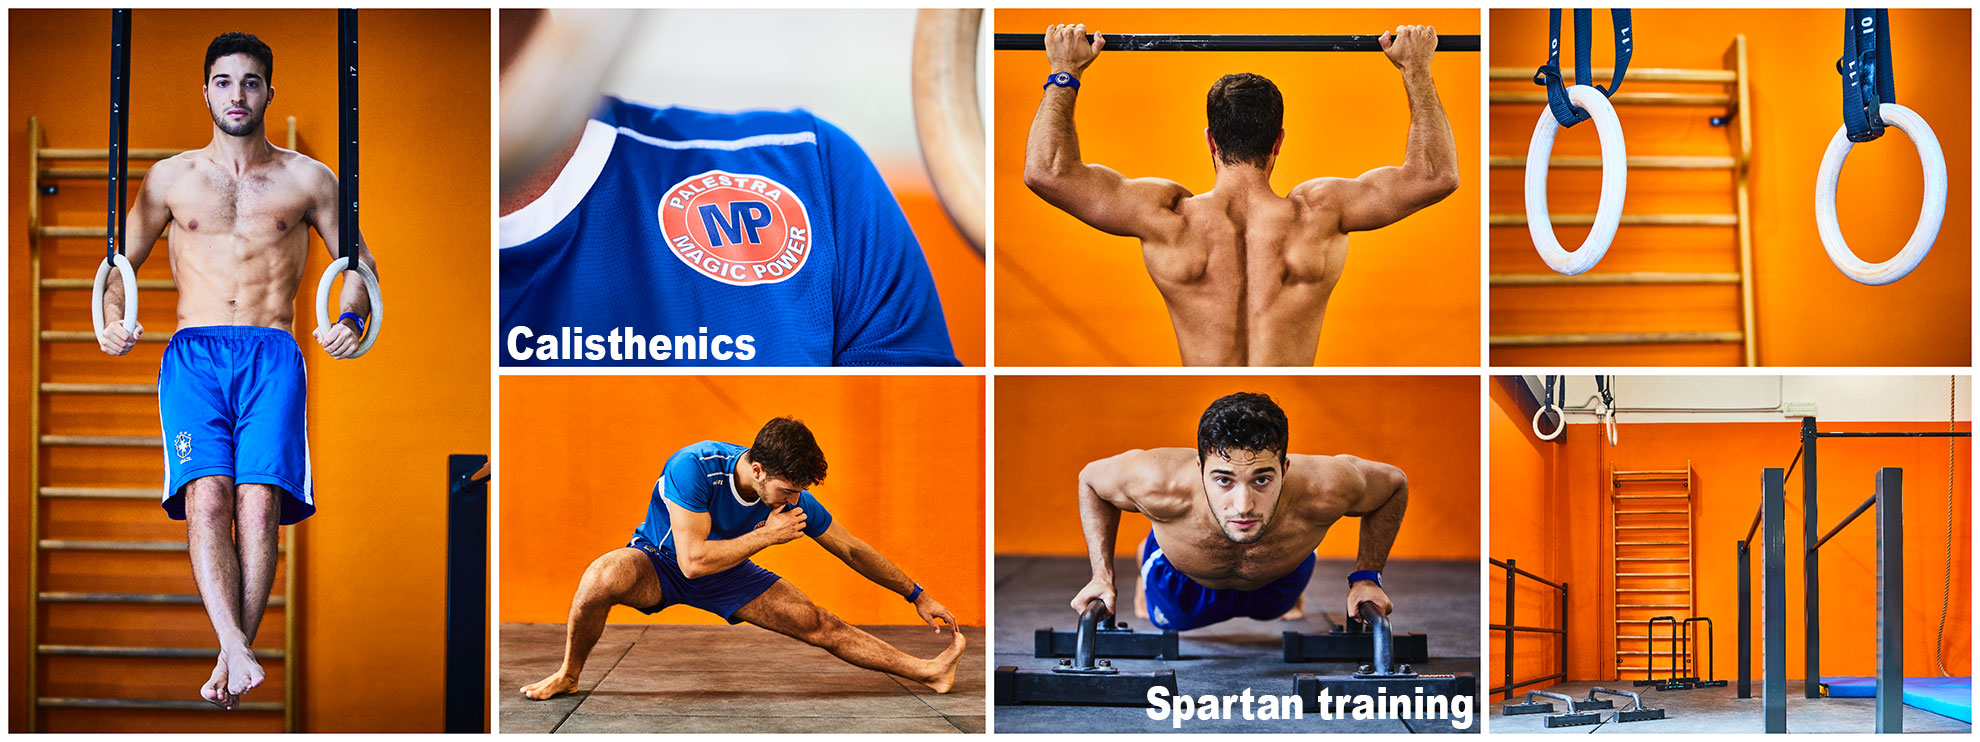 calisthenics - spartan training